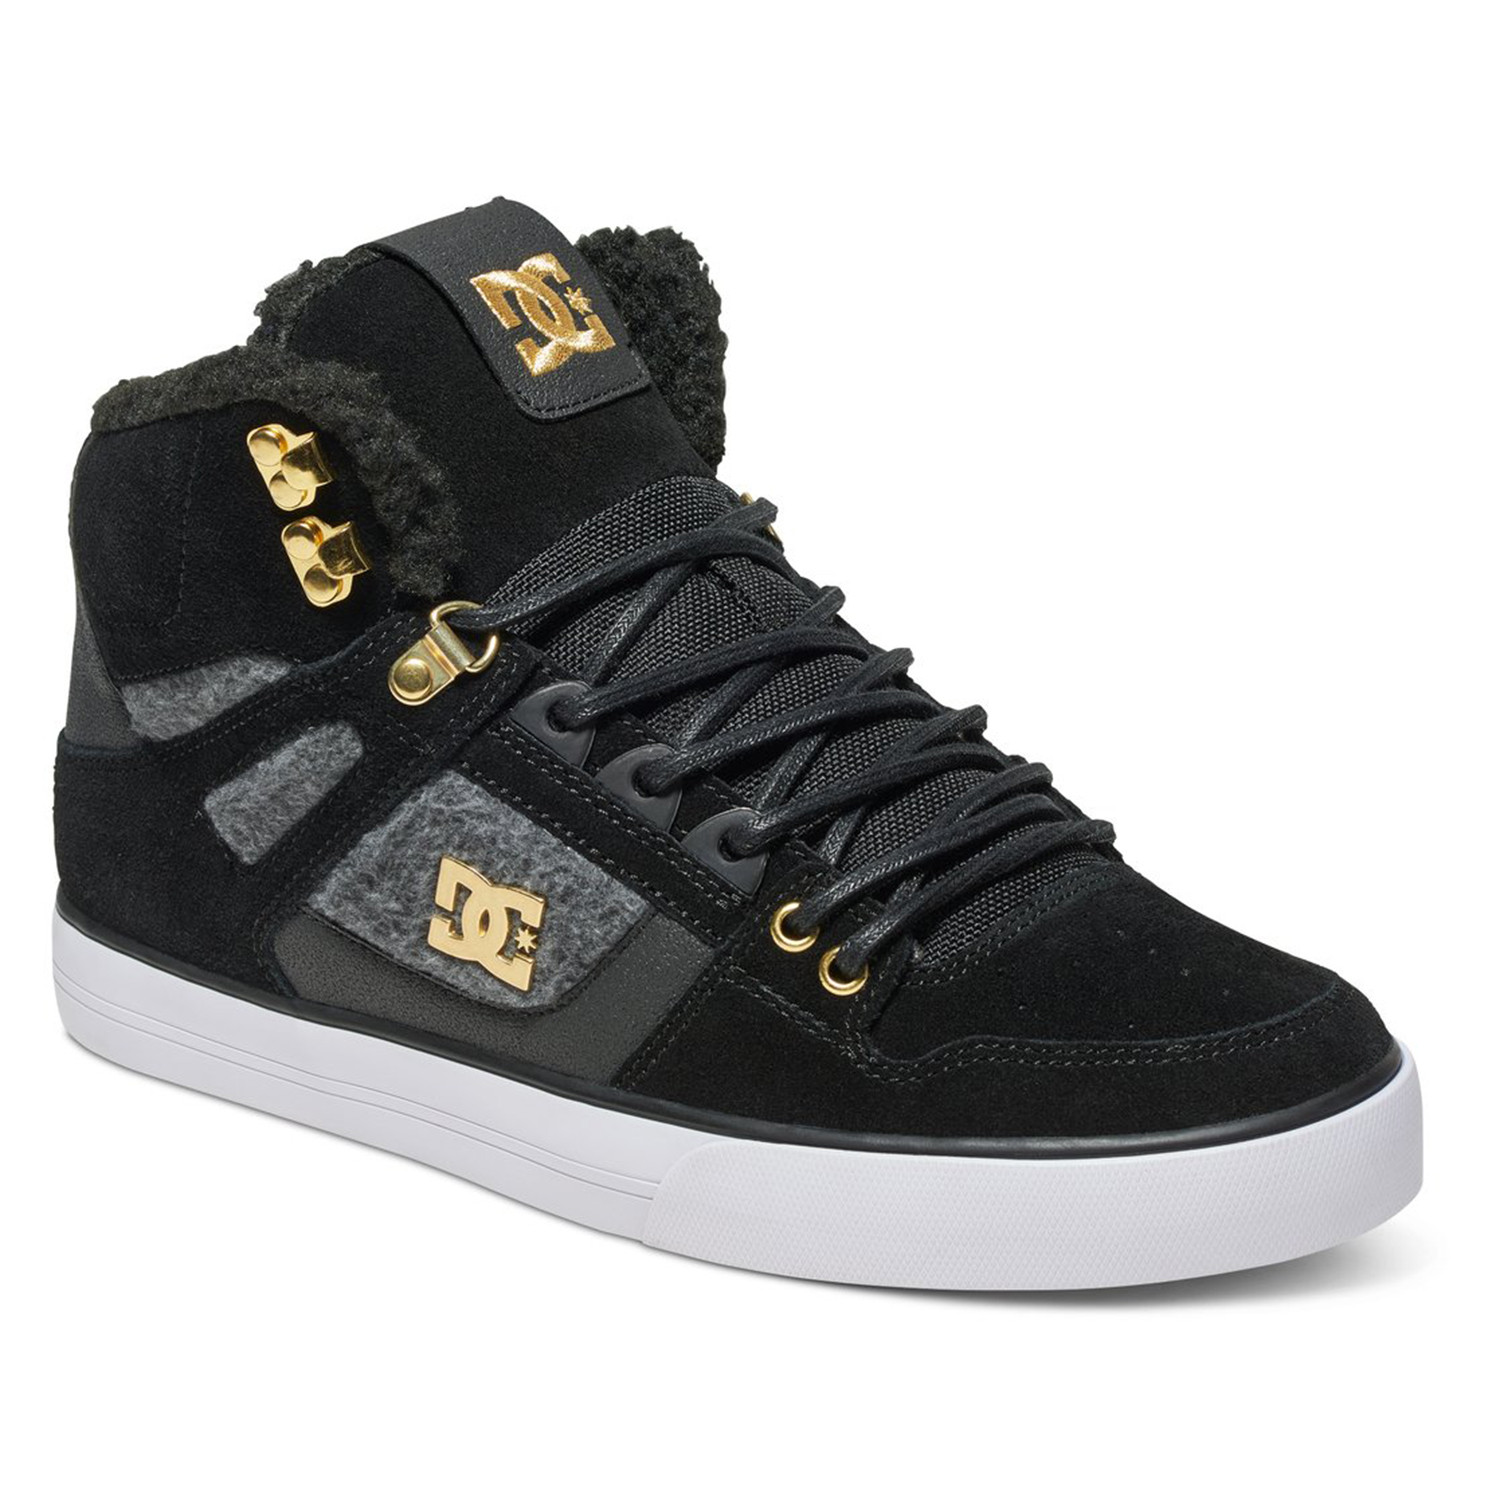 spartan high wc chaussure homme pas cher chaussures de skate montantes dc shoes discount. Black Bedroom Furniture Sets. Home Design Ideas